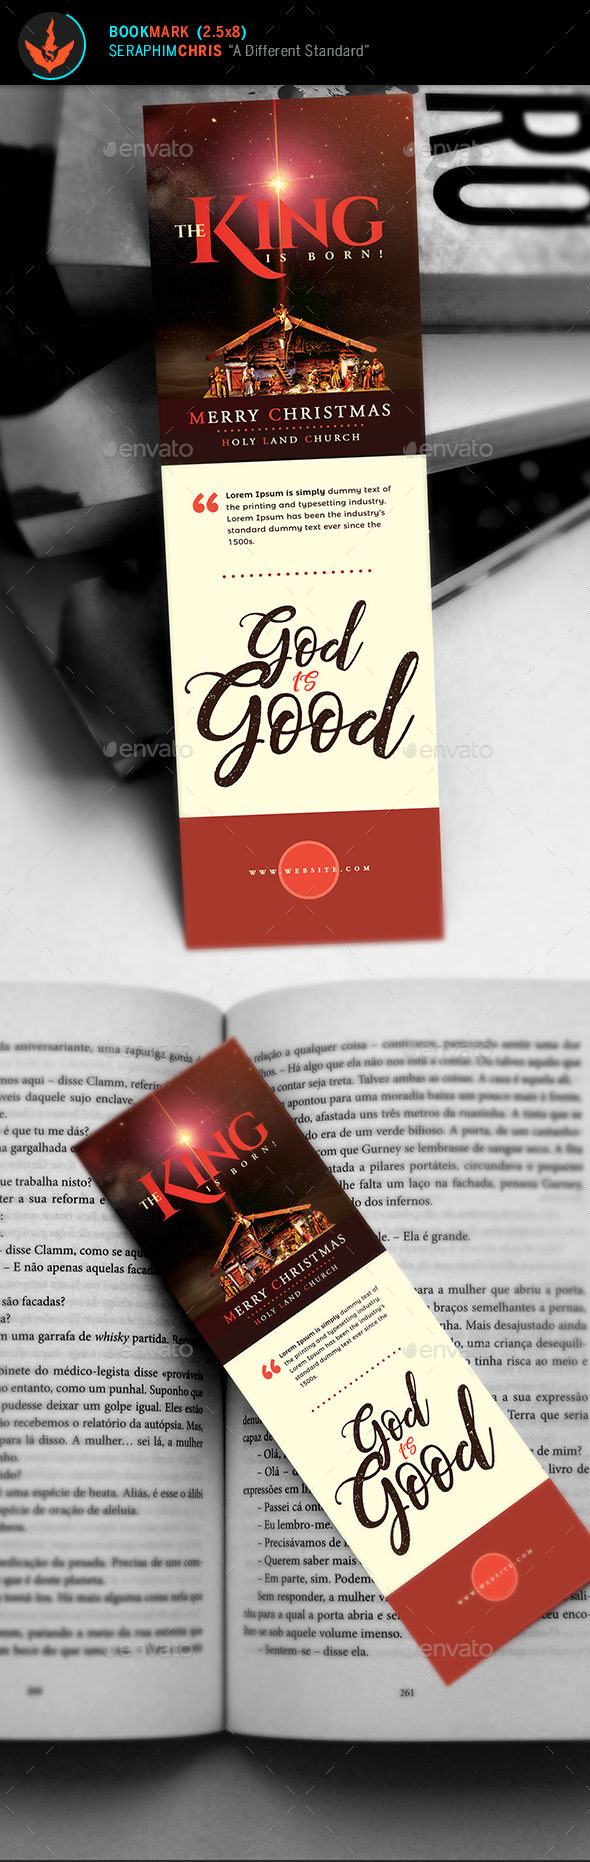 GraphicRiver The King is Born Christmas Bookmark Template 21054617